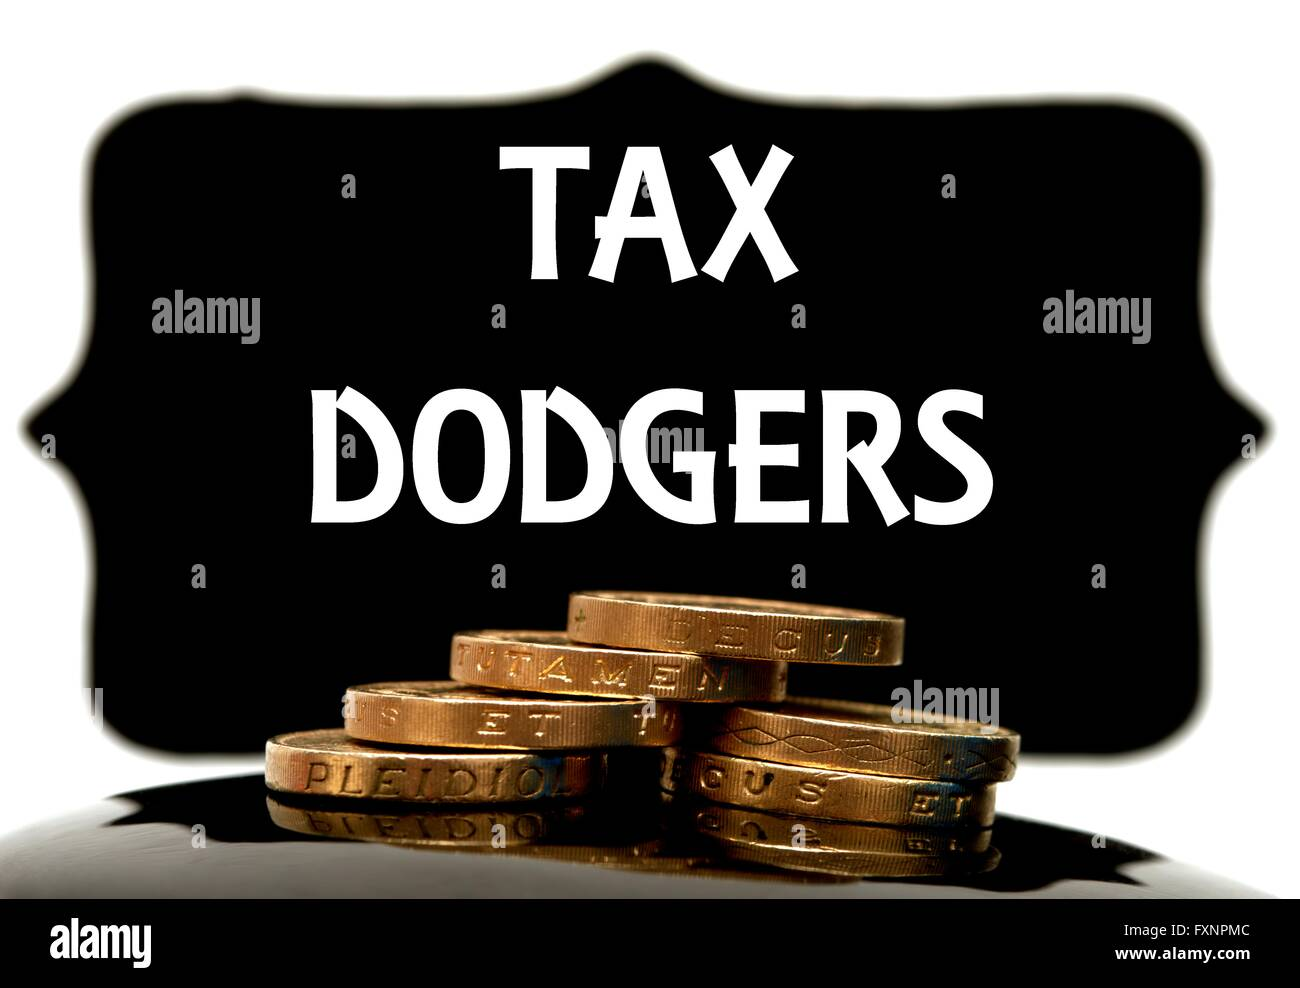 Tax dodgers concept - Stock Image